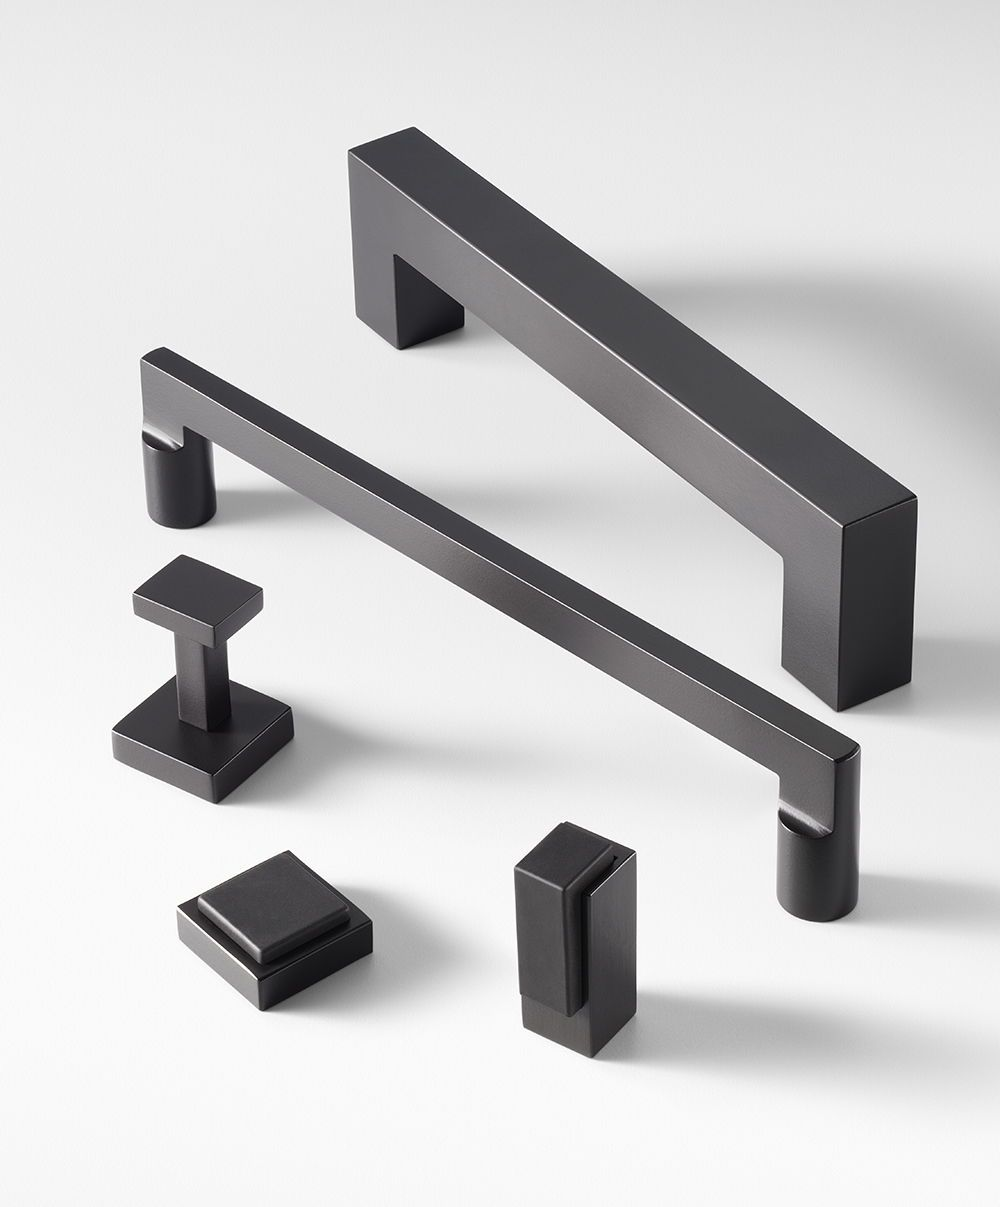 Rockwood Architectural Door Pulls Offer Endless Options With A Mix